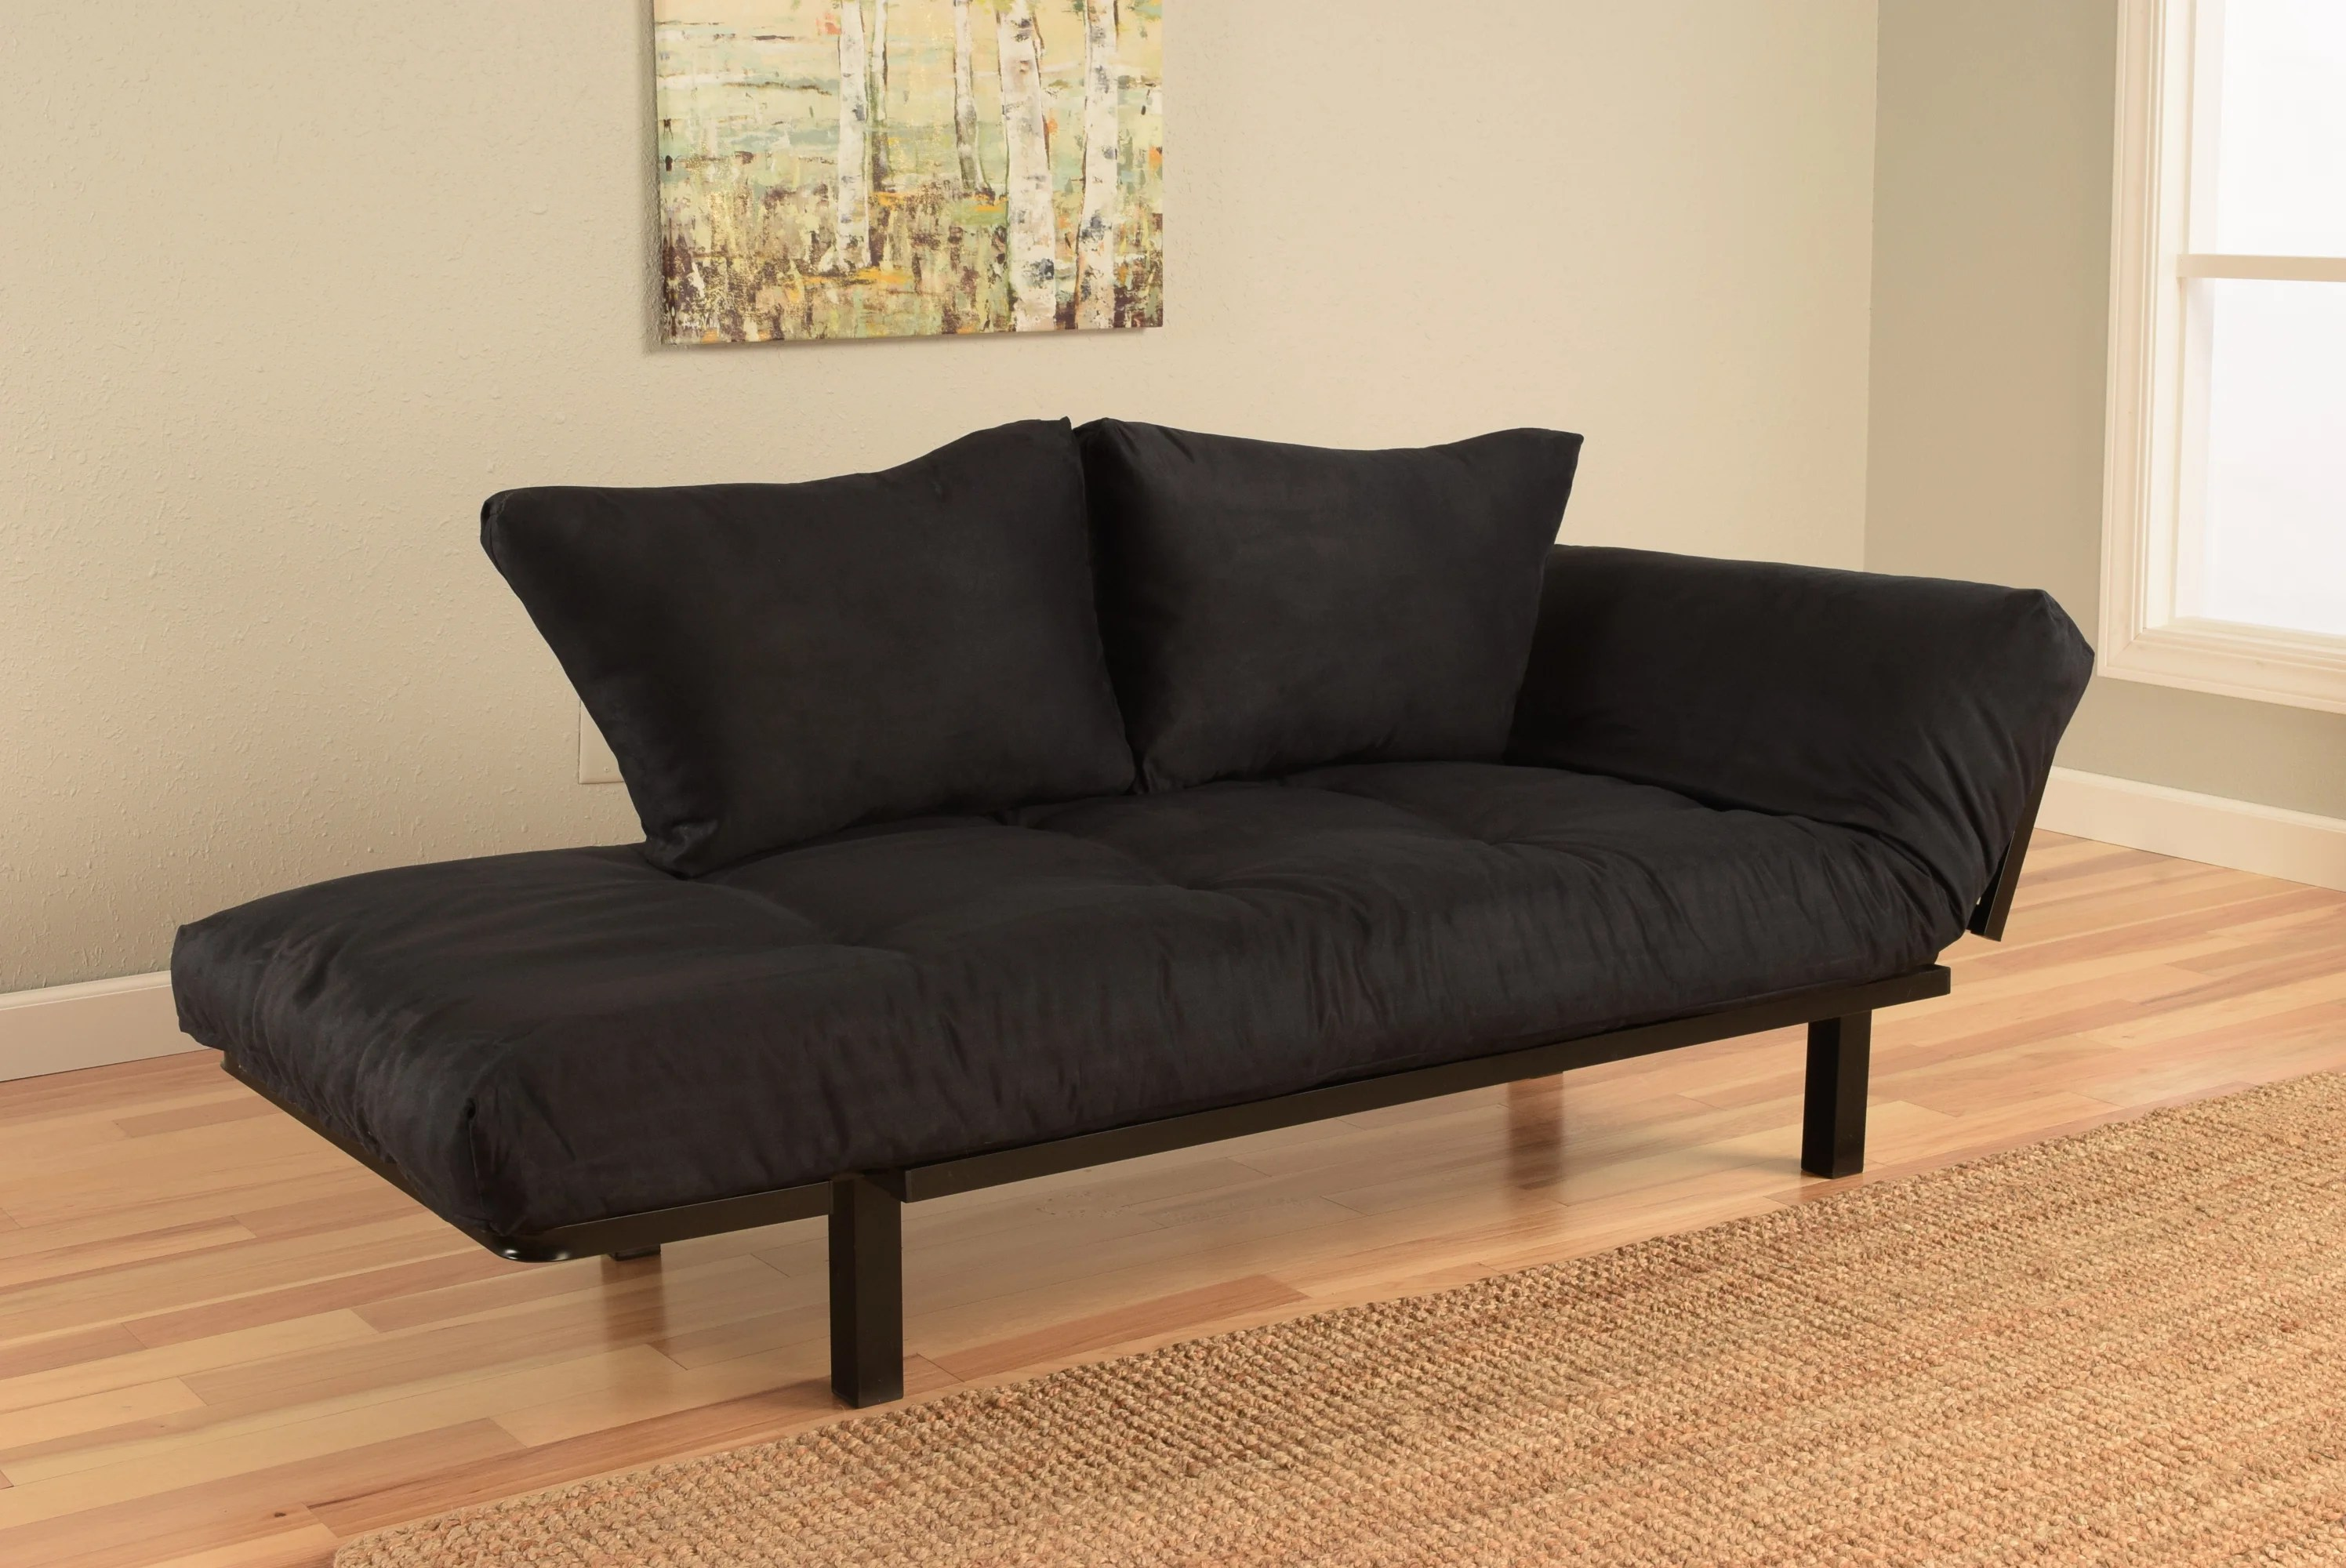 sofa lounger with pull out bed country style sofas melbourne futon sleeper chairs